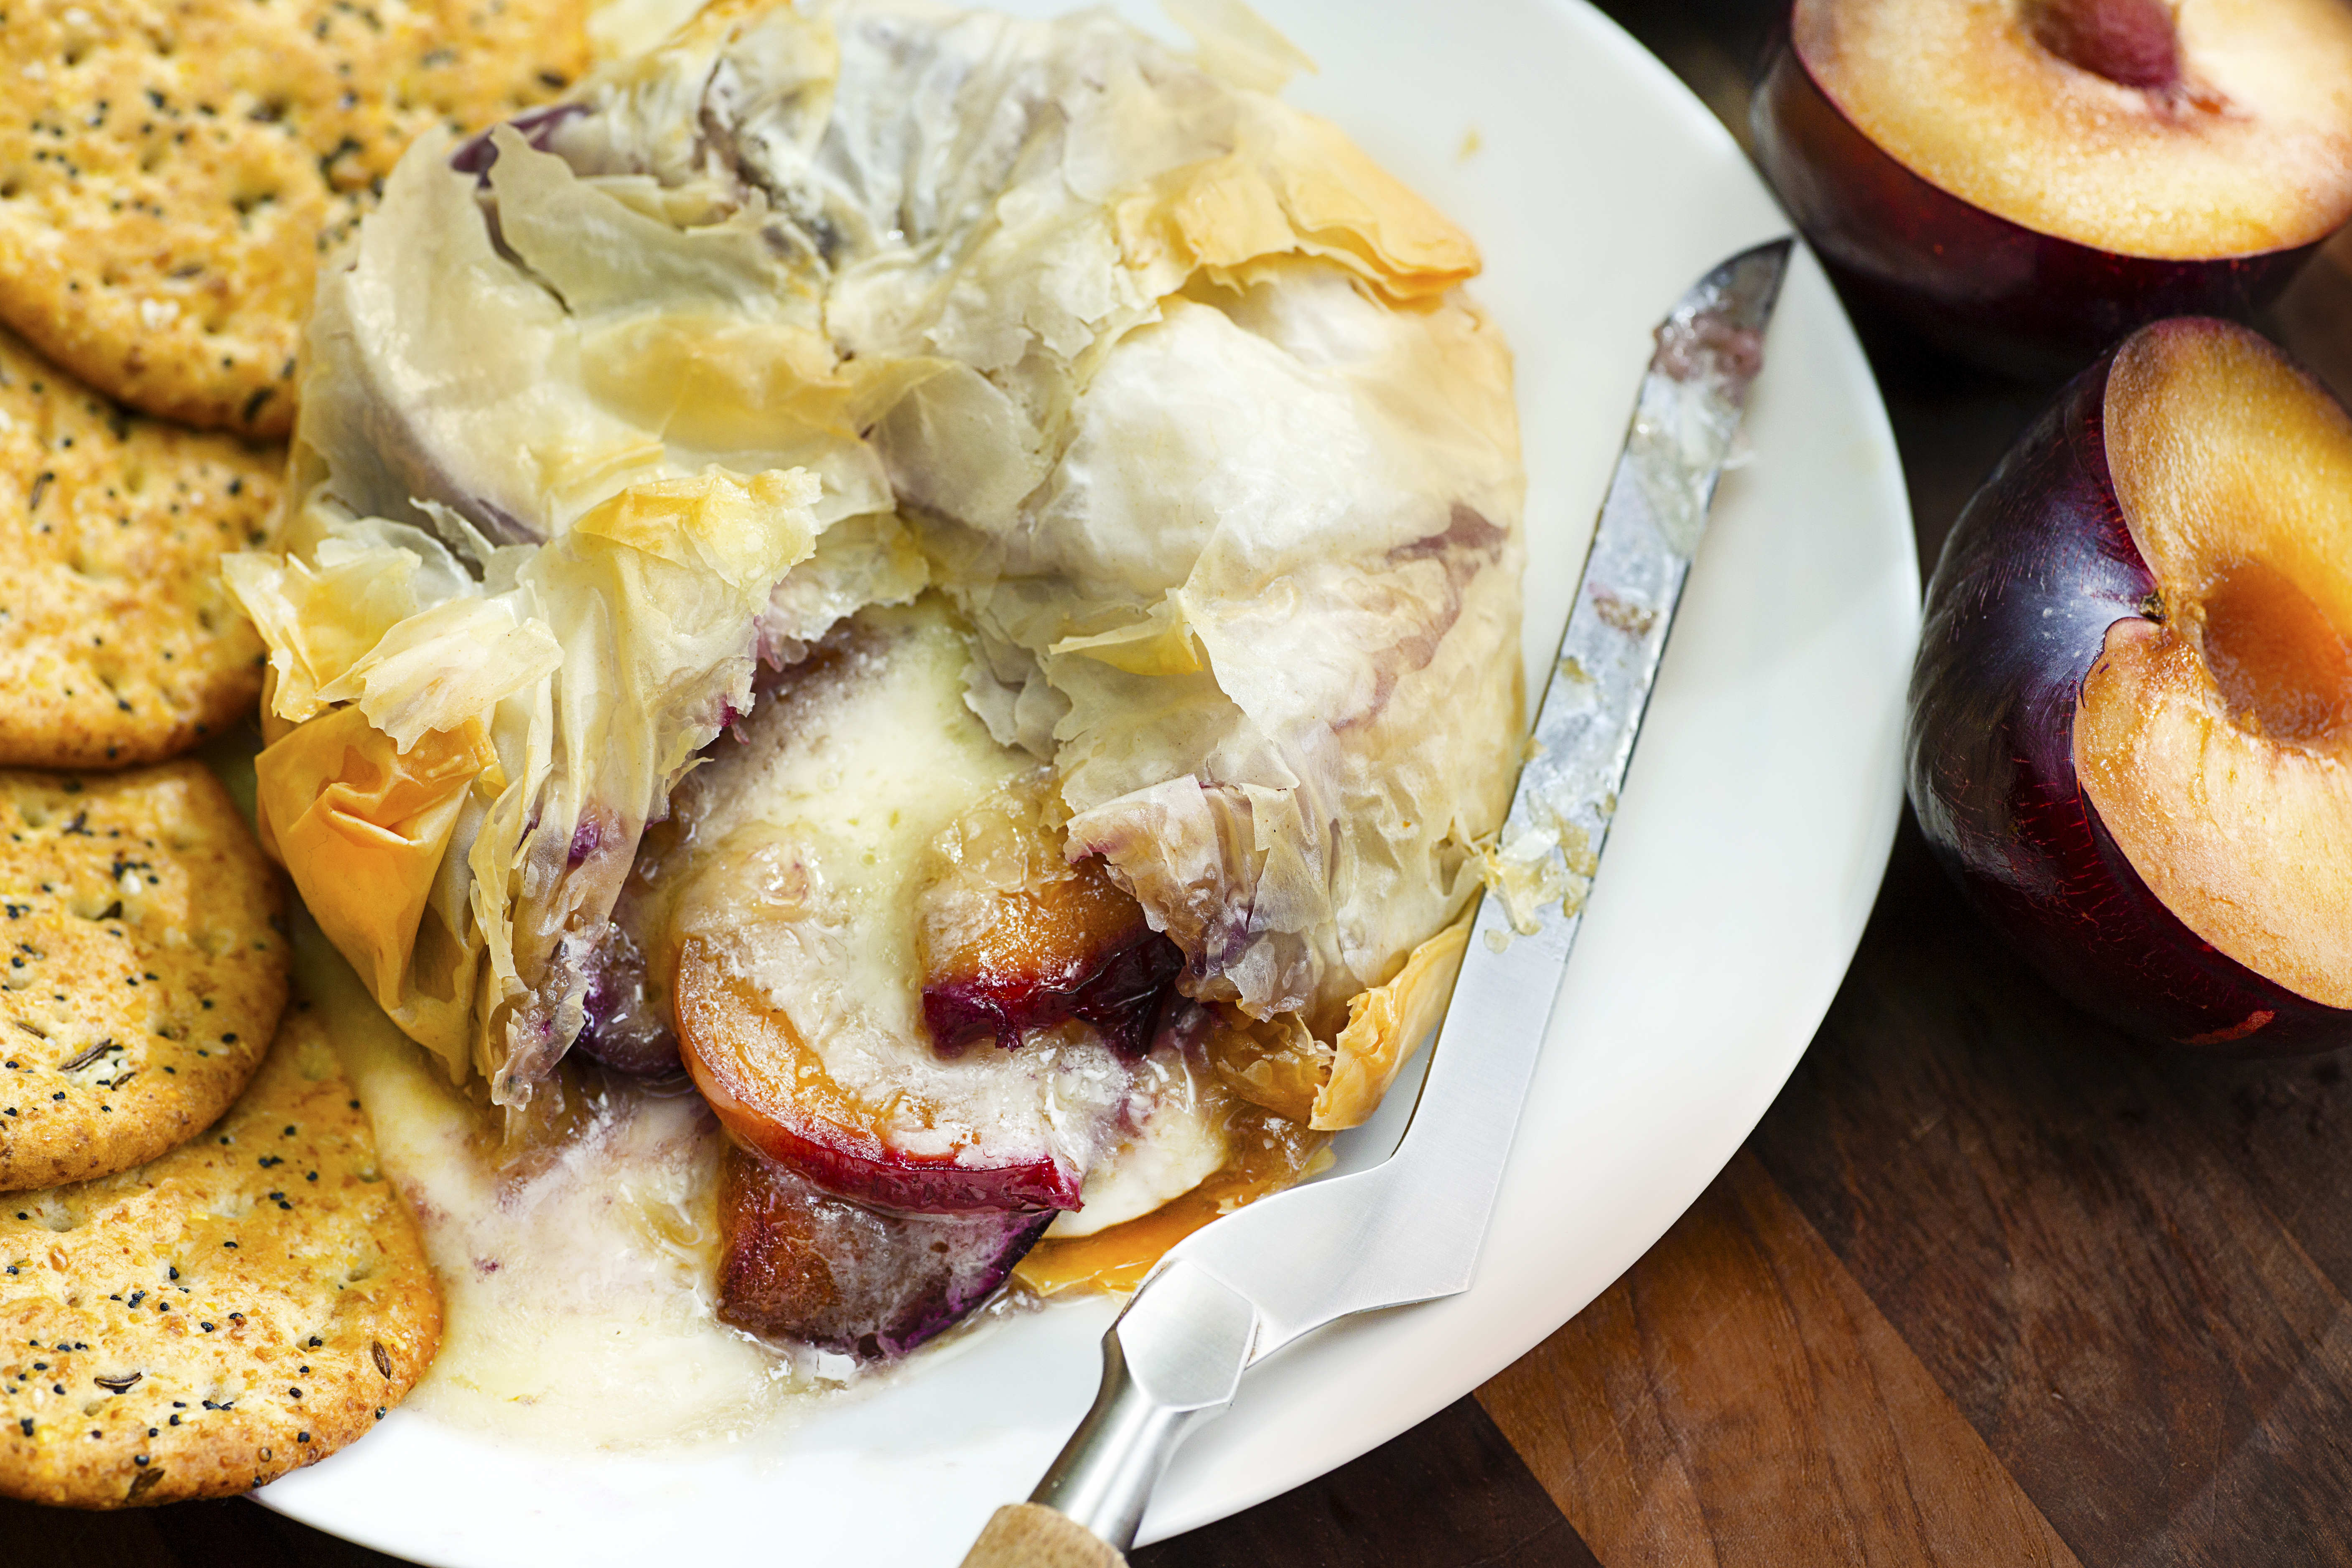 Baked Brie and Plums | Family-Friendly Recipes for Summer